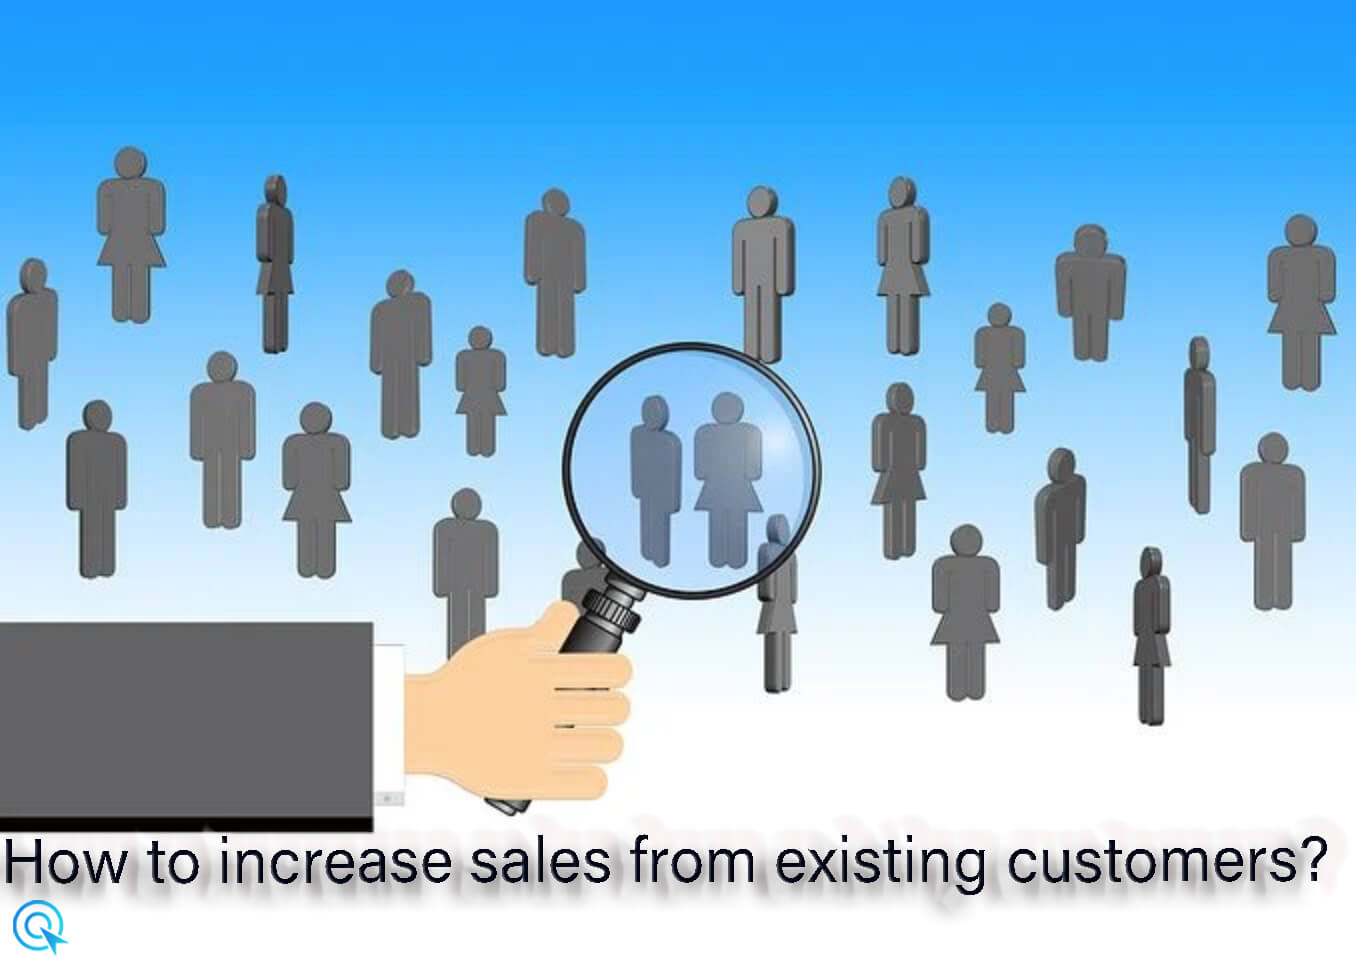 How to increase sales from existing customers?